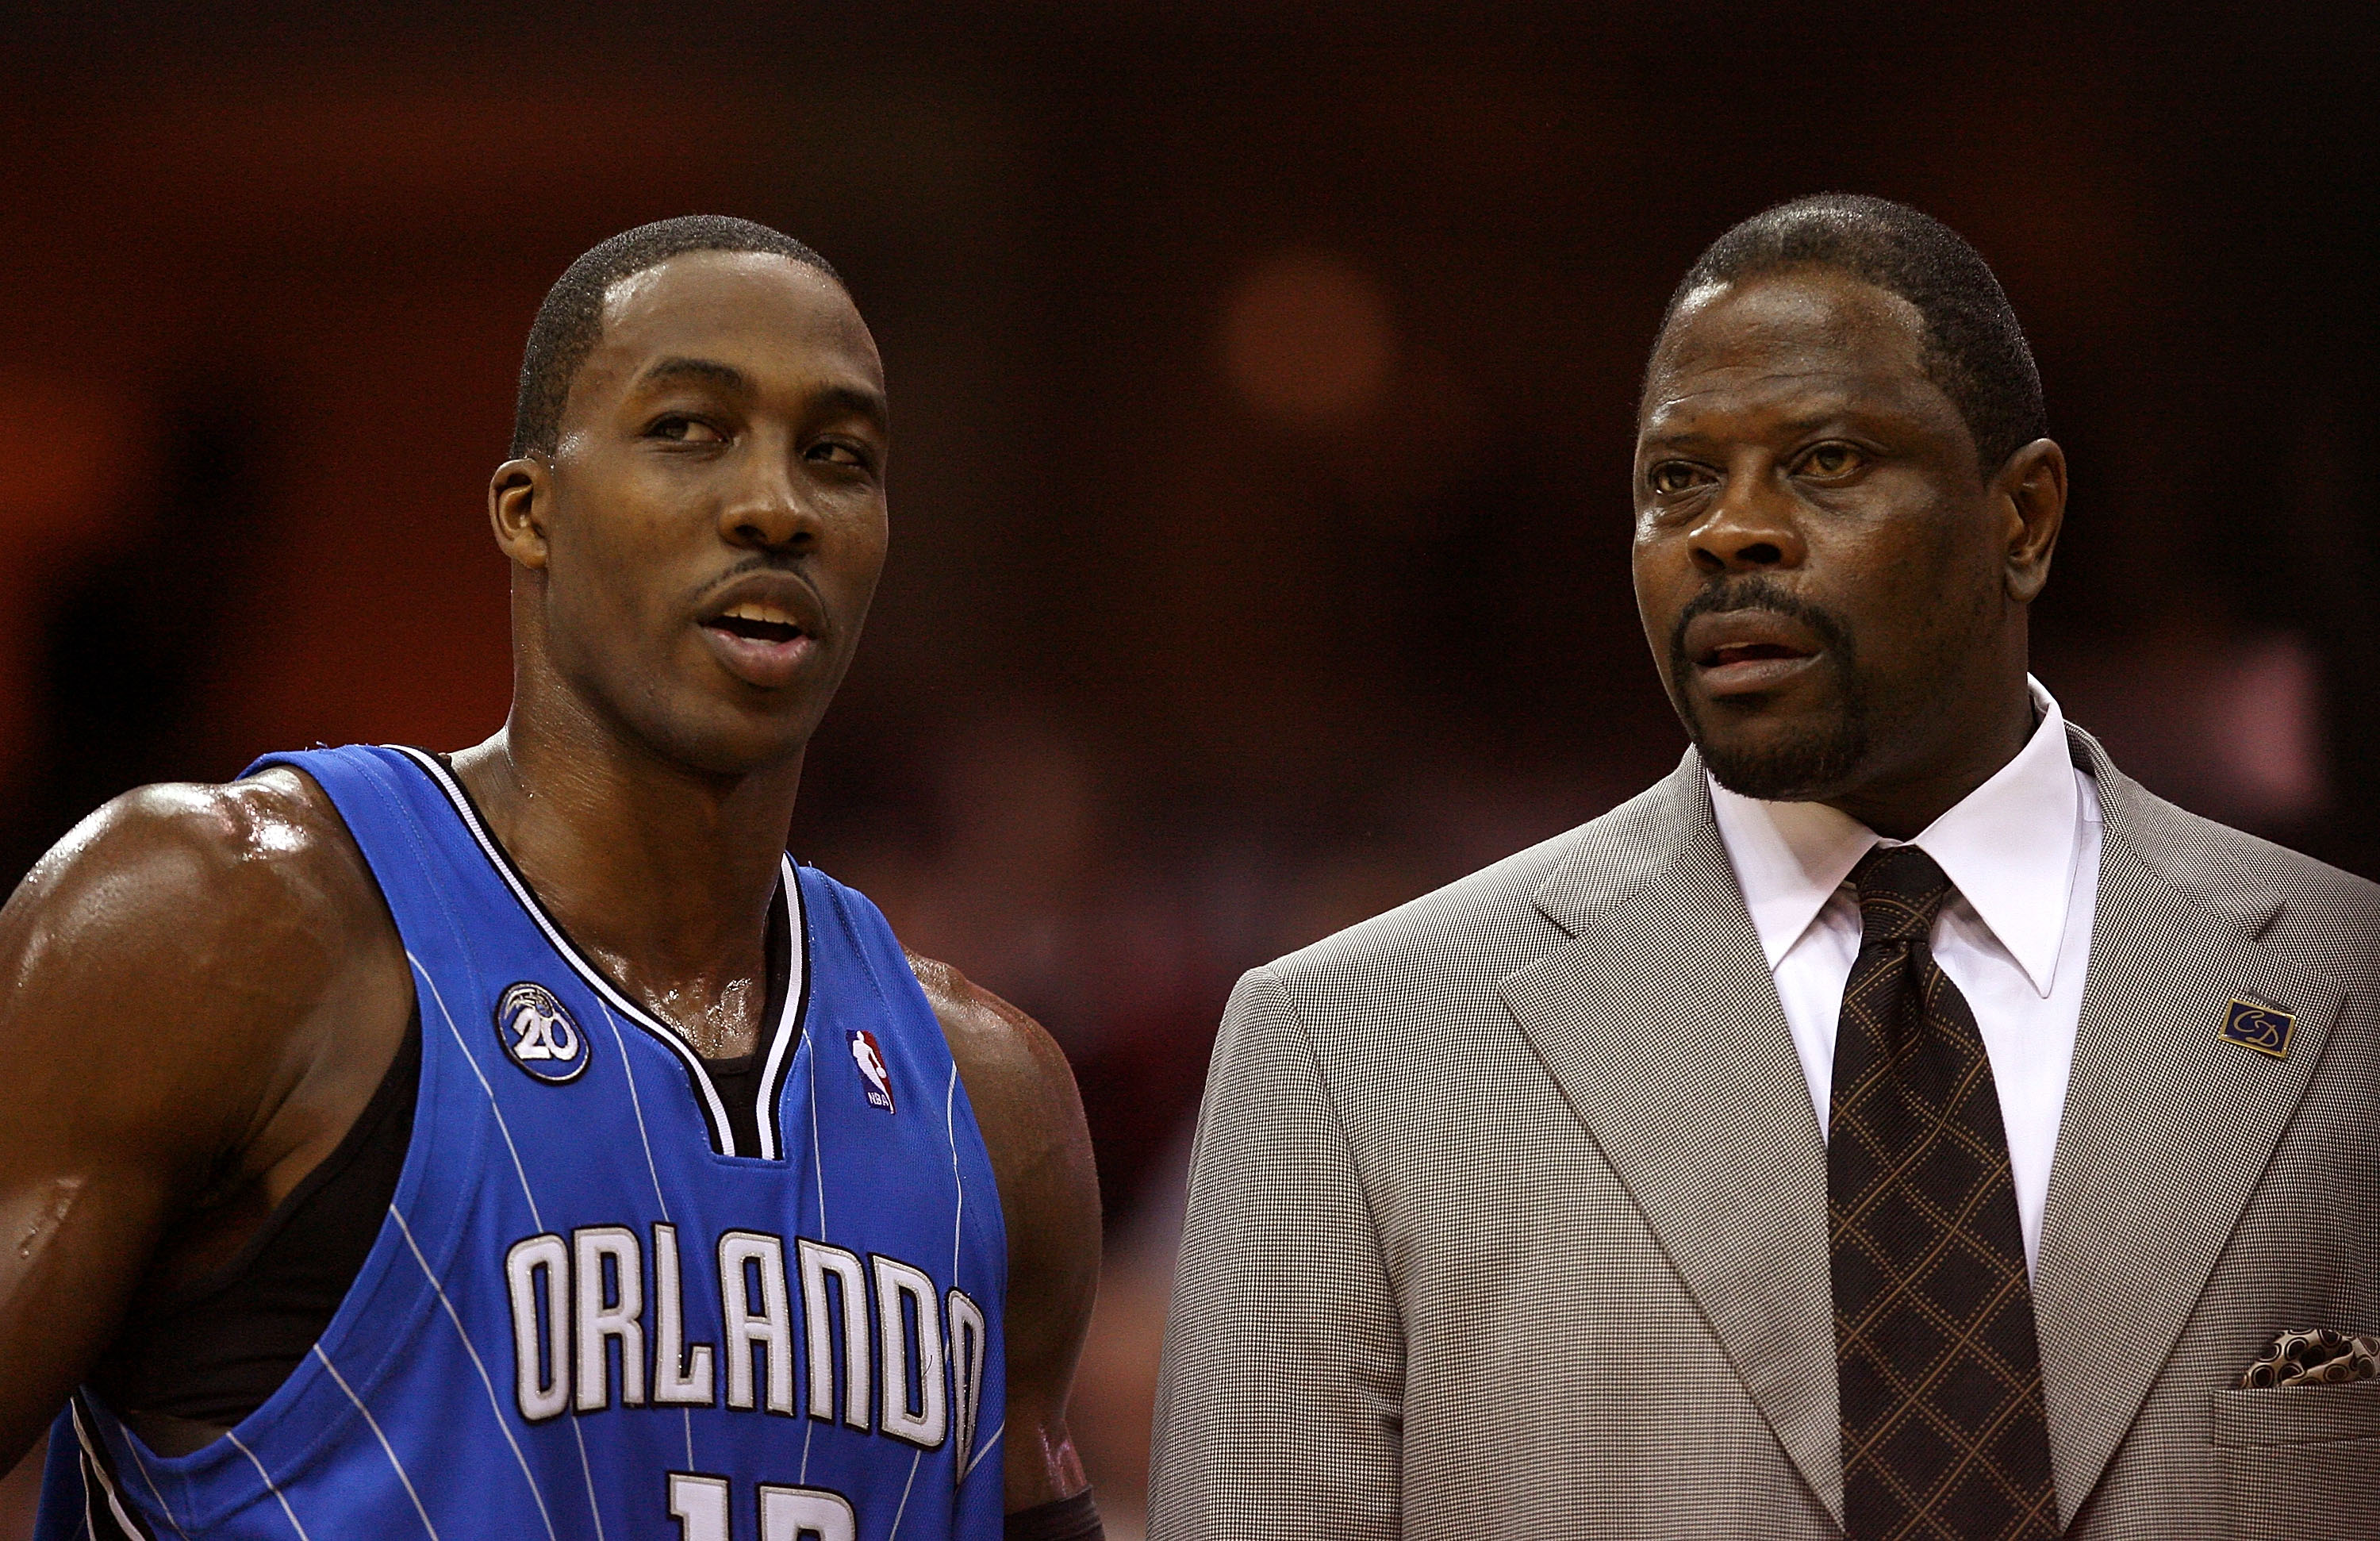 CLEVELAND - MAY 28: Dwight Howard #12 and assistant coach Patrick Ewing of the Orlando Magic talk on the sideline against the Cleveland Cavaliers in Game Five of the Eastern Conference Finals during the 2009 Playoffs at Quicken Loans Arena on May 28, 2009